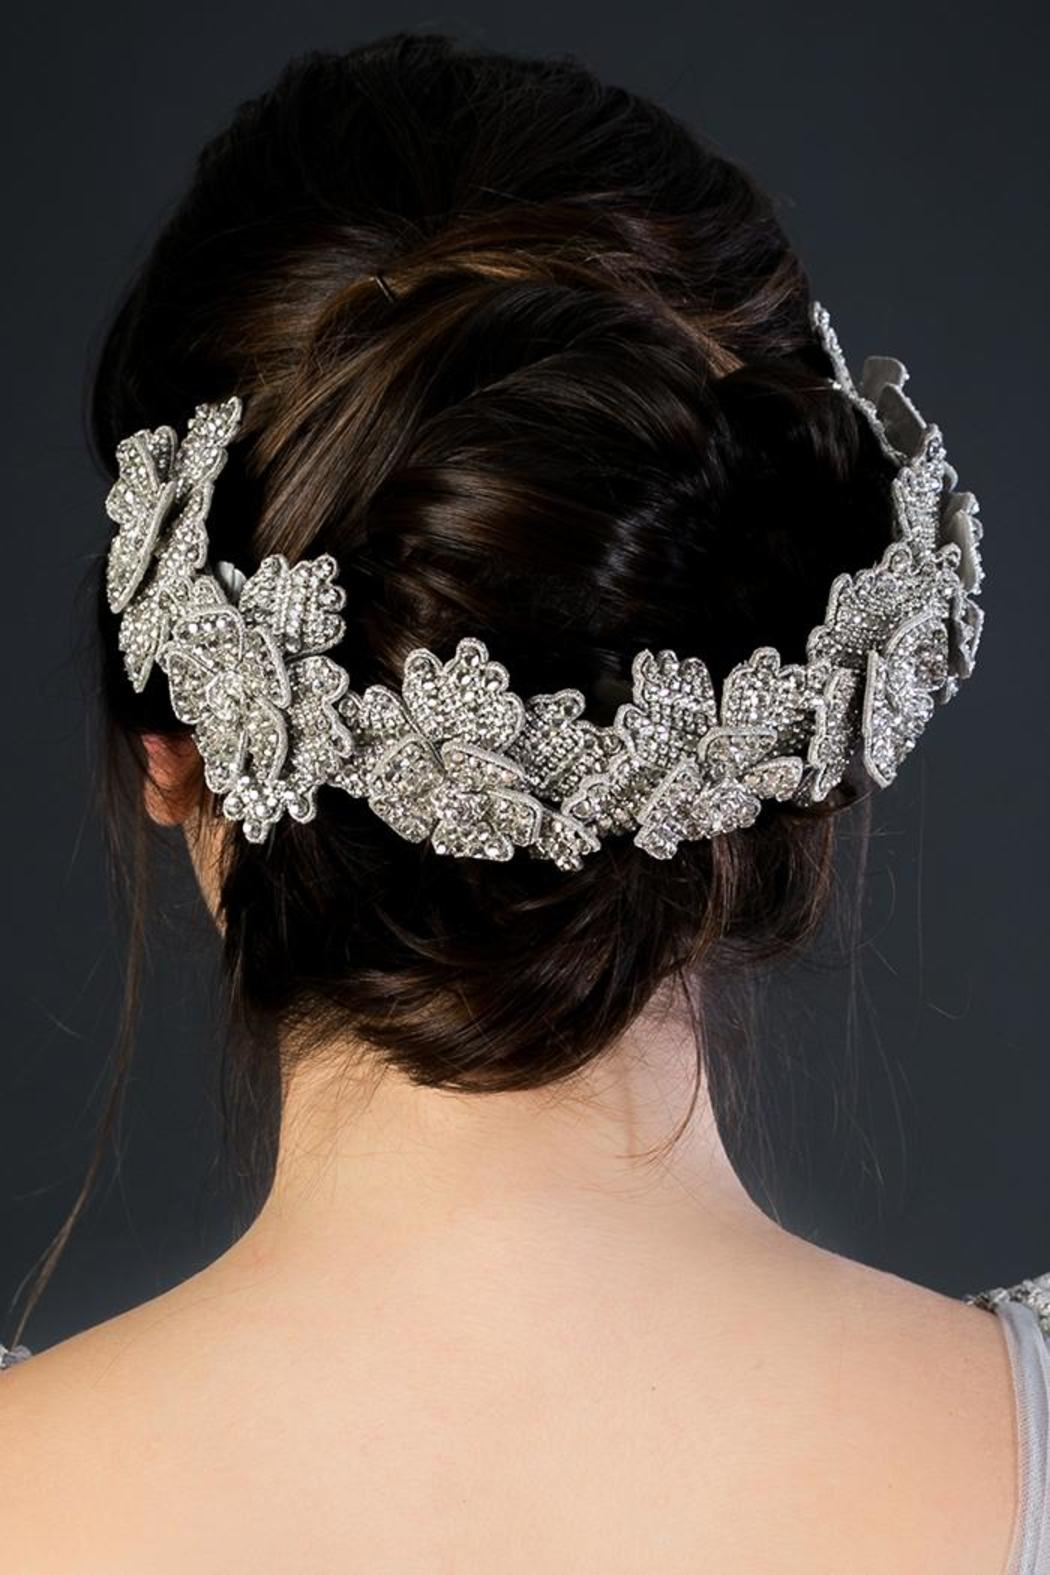 Deepa gurnani silver flower crown from monterrey by mona mour deepa gurnani silver flower crown front cropped image izmirmasajfo